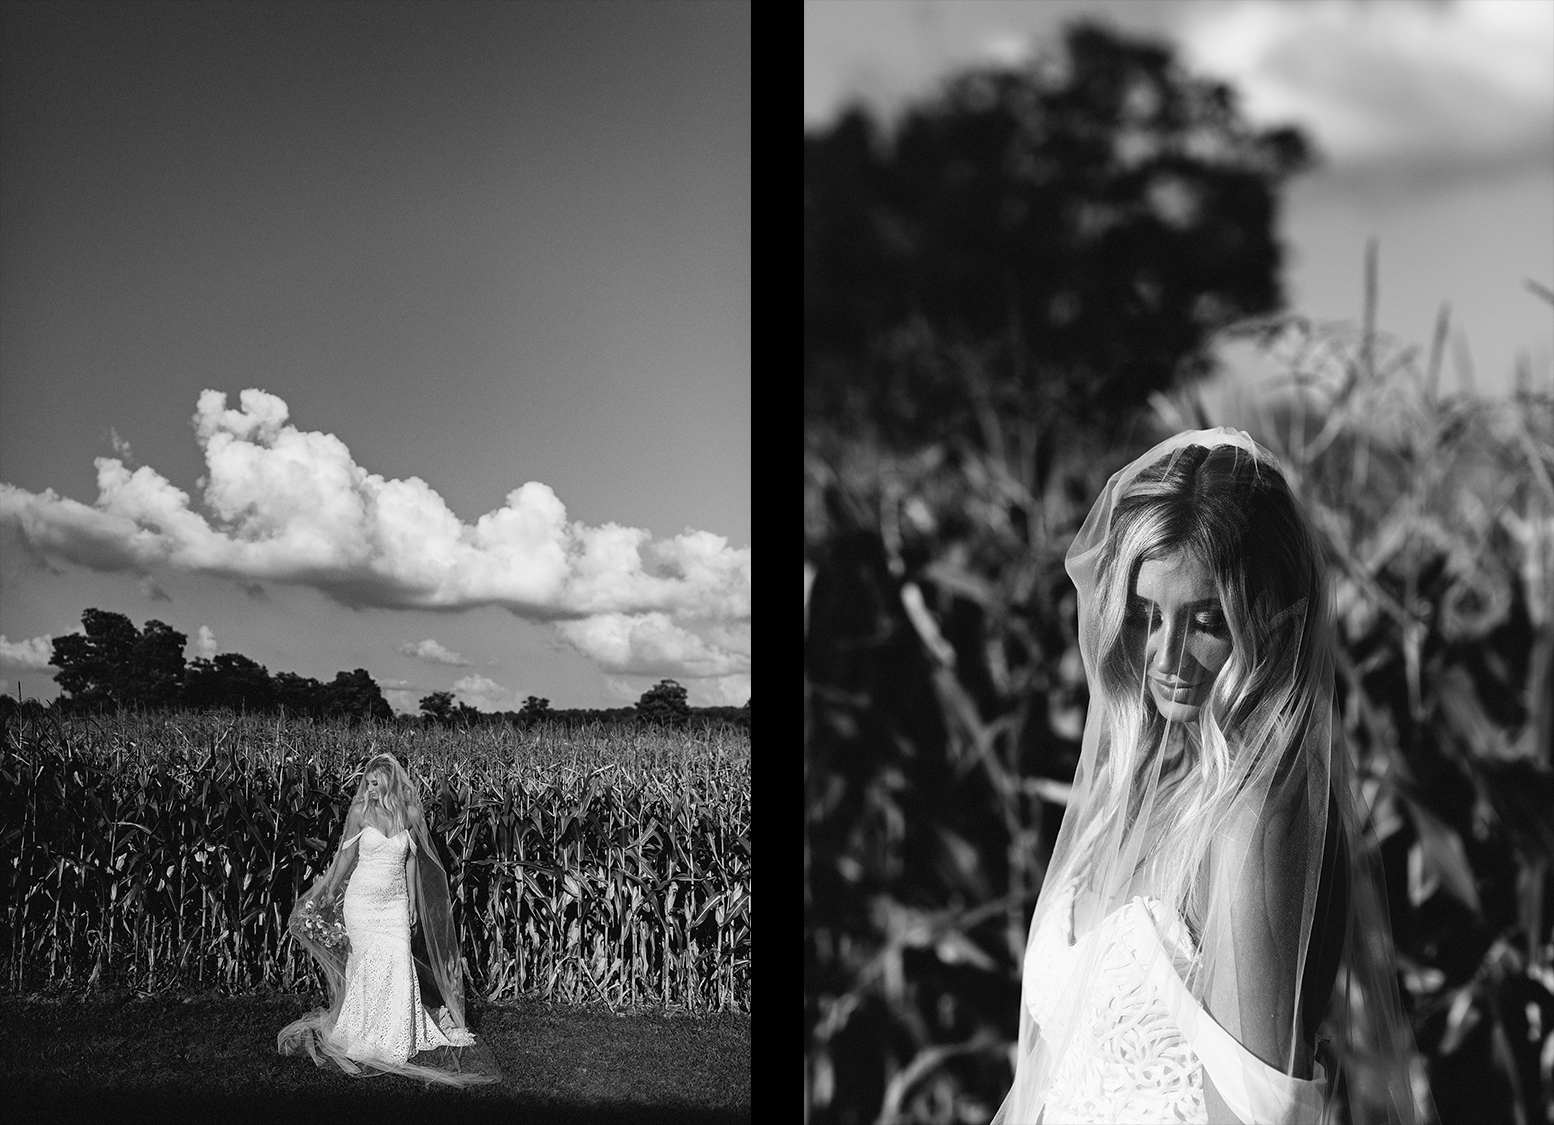 Portaits-of-bride-in-cornfield-with-pink-sunset-black-and-white-film.jpg